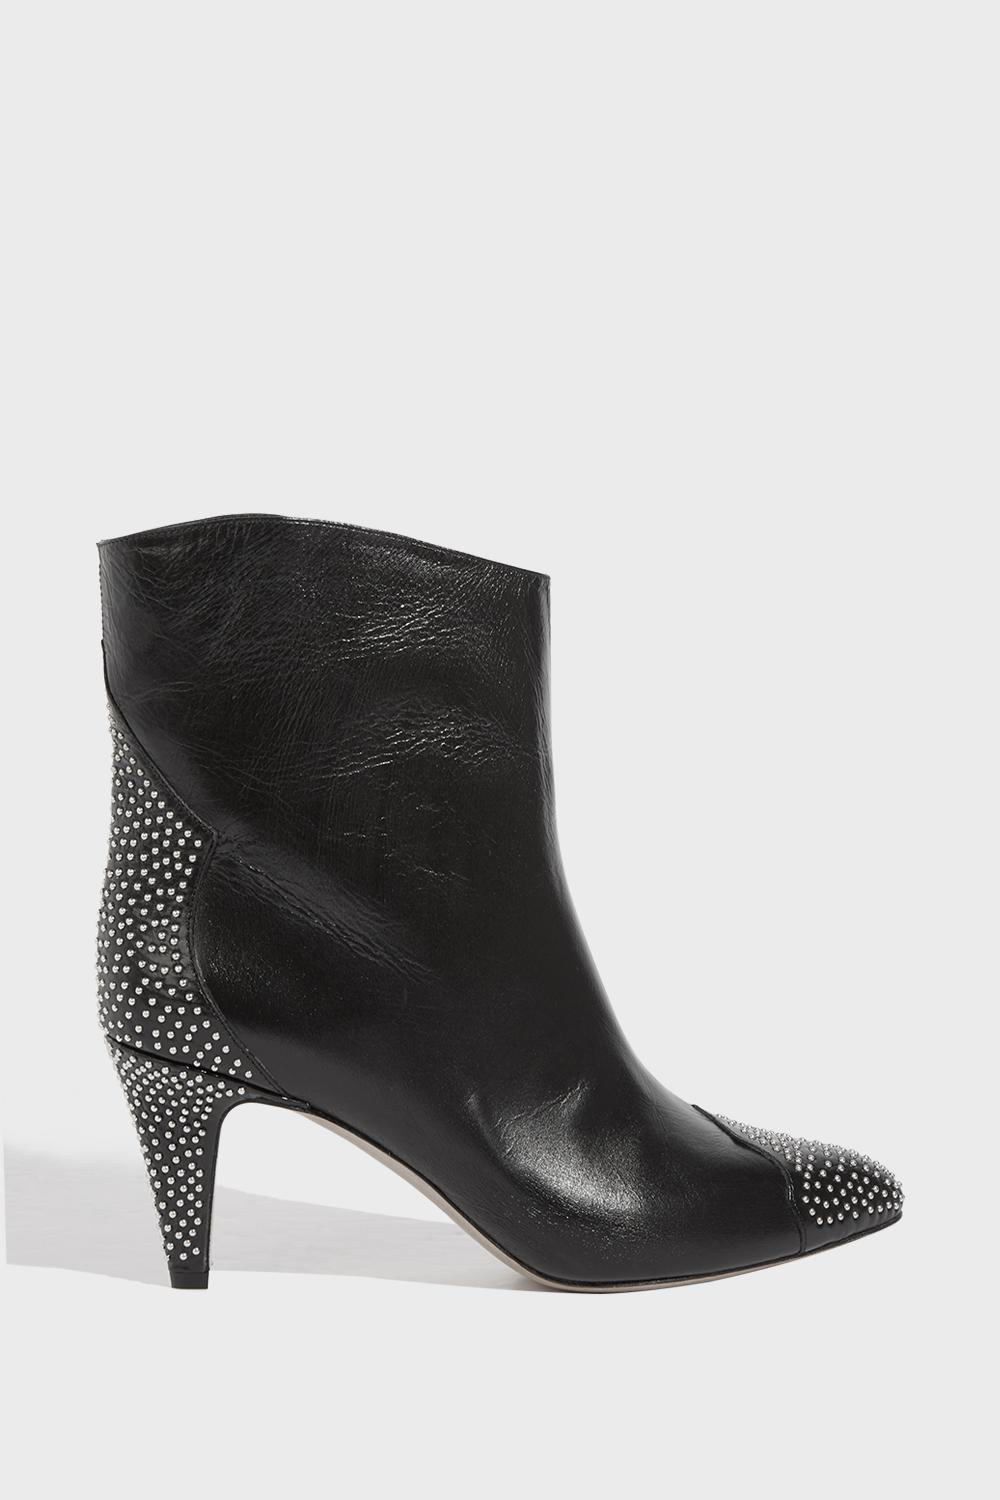 2a1e631485a Stud-Embellished Mid-Heel Boots in Black